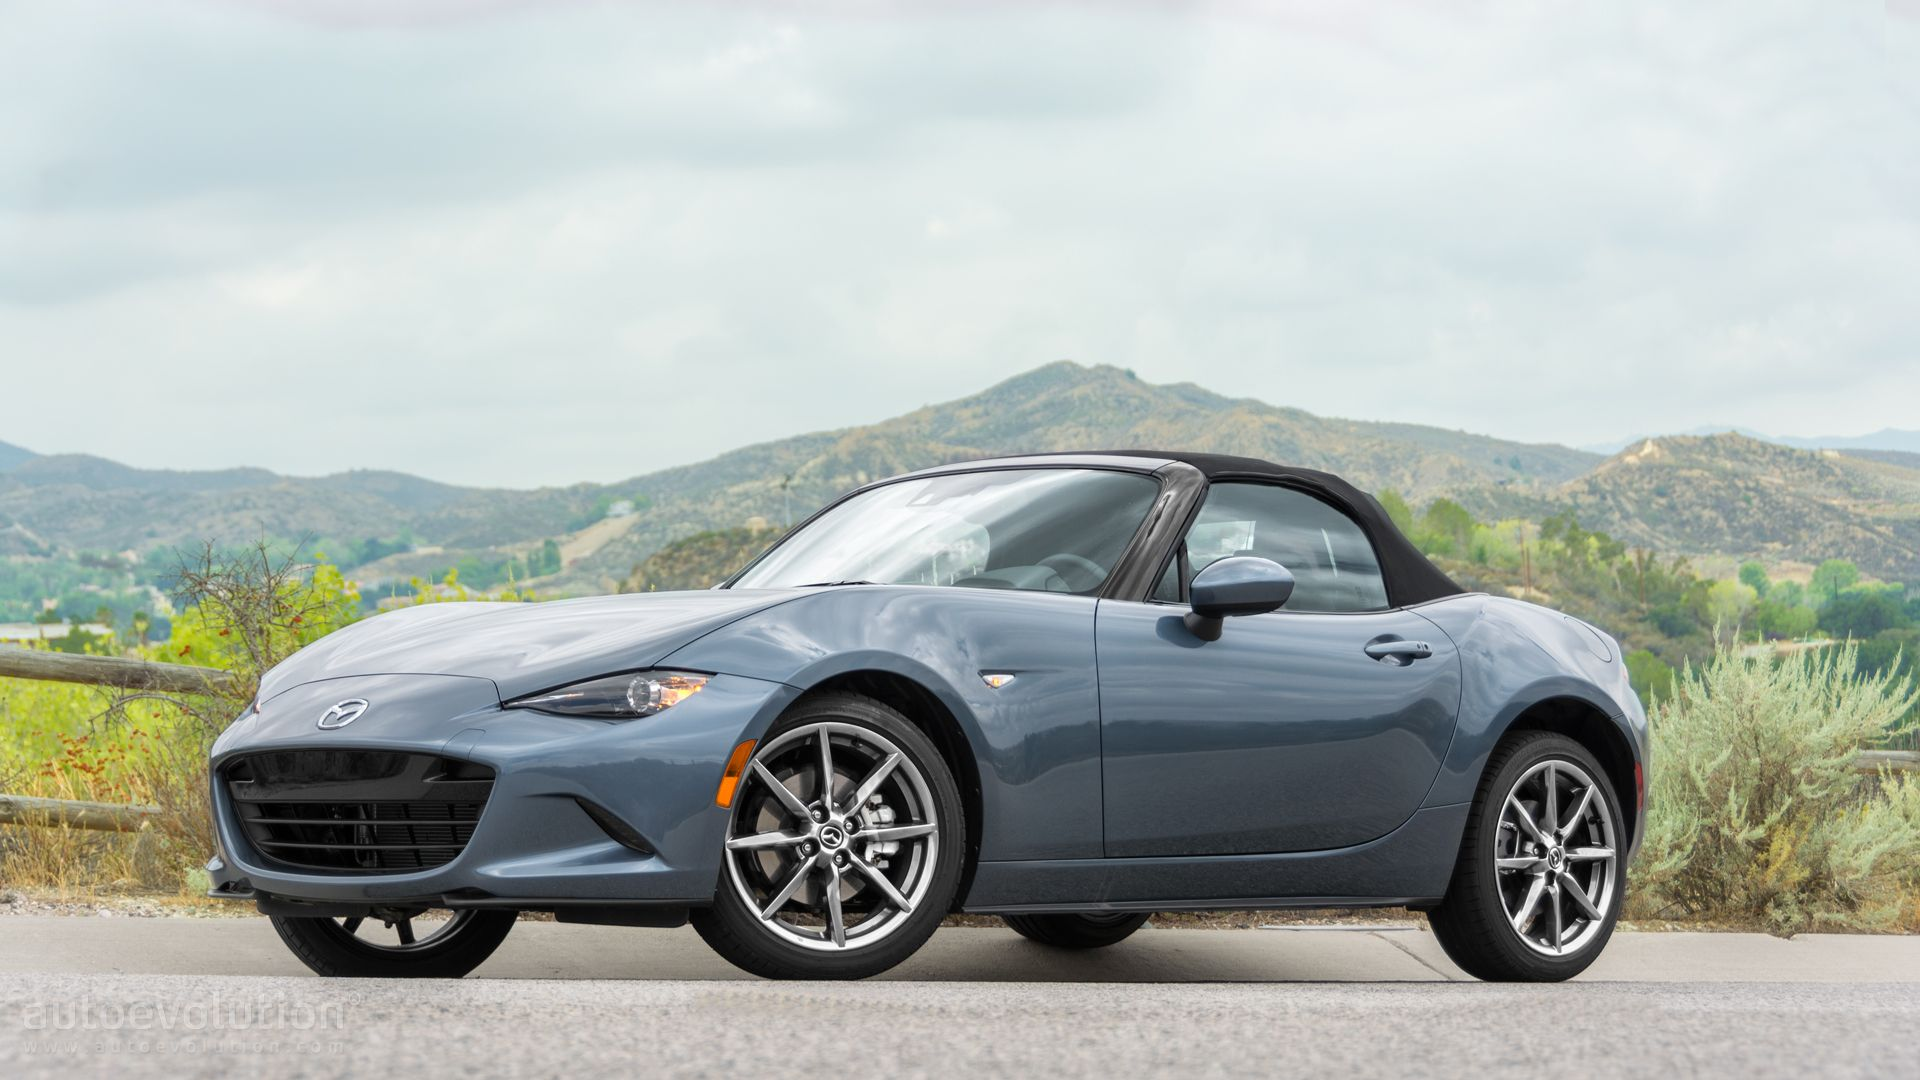 mazda mx 5 miata review 2015 1_23 2016 mazda mx 5 miata review autoevolution 2008 Mazda Miata Trim Packages at suagrazia.org